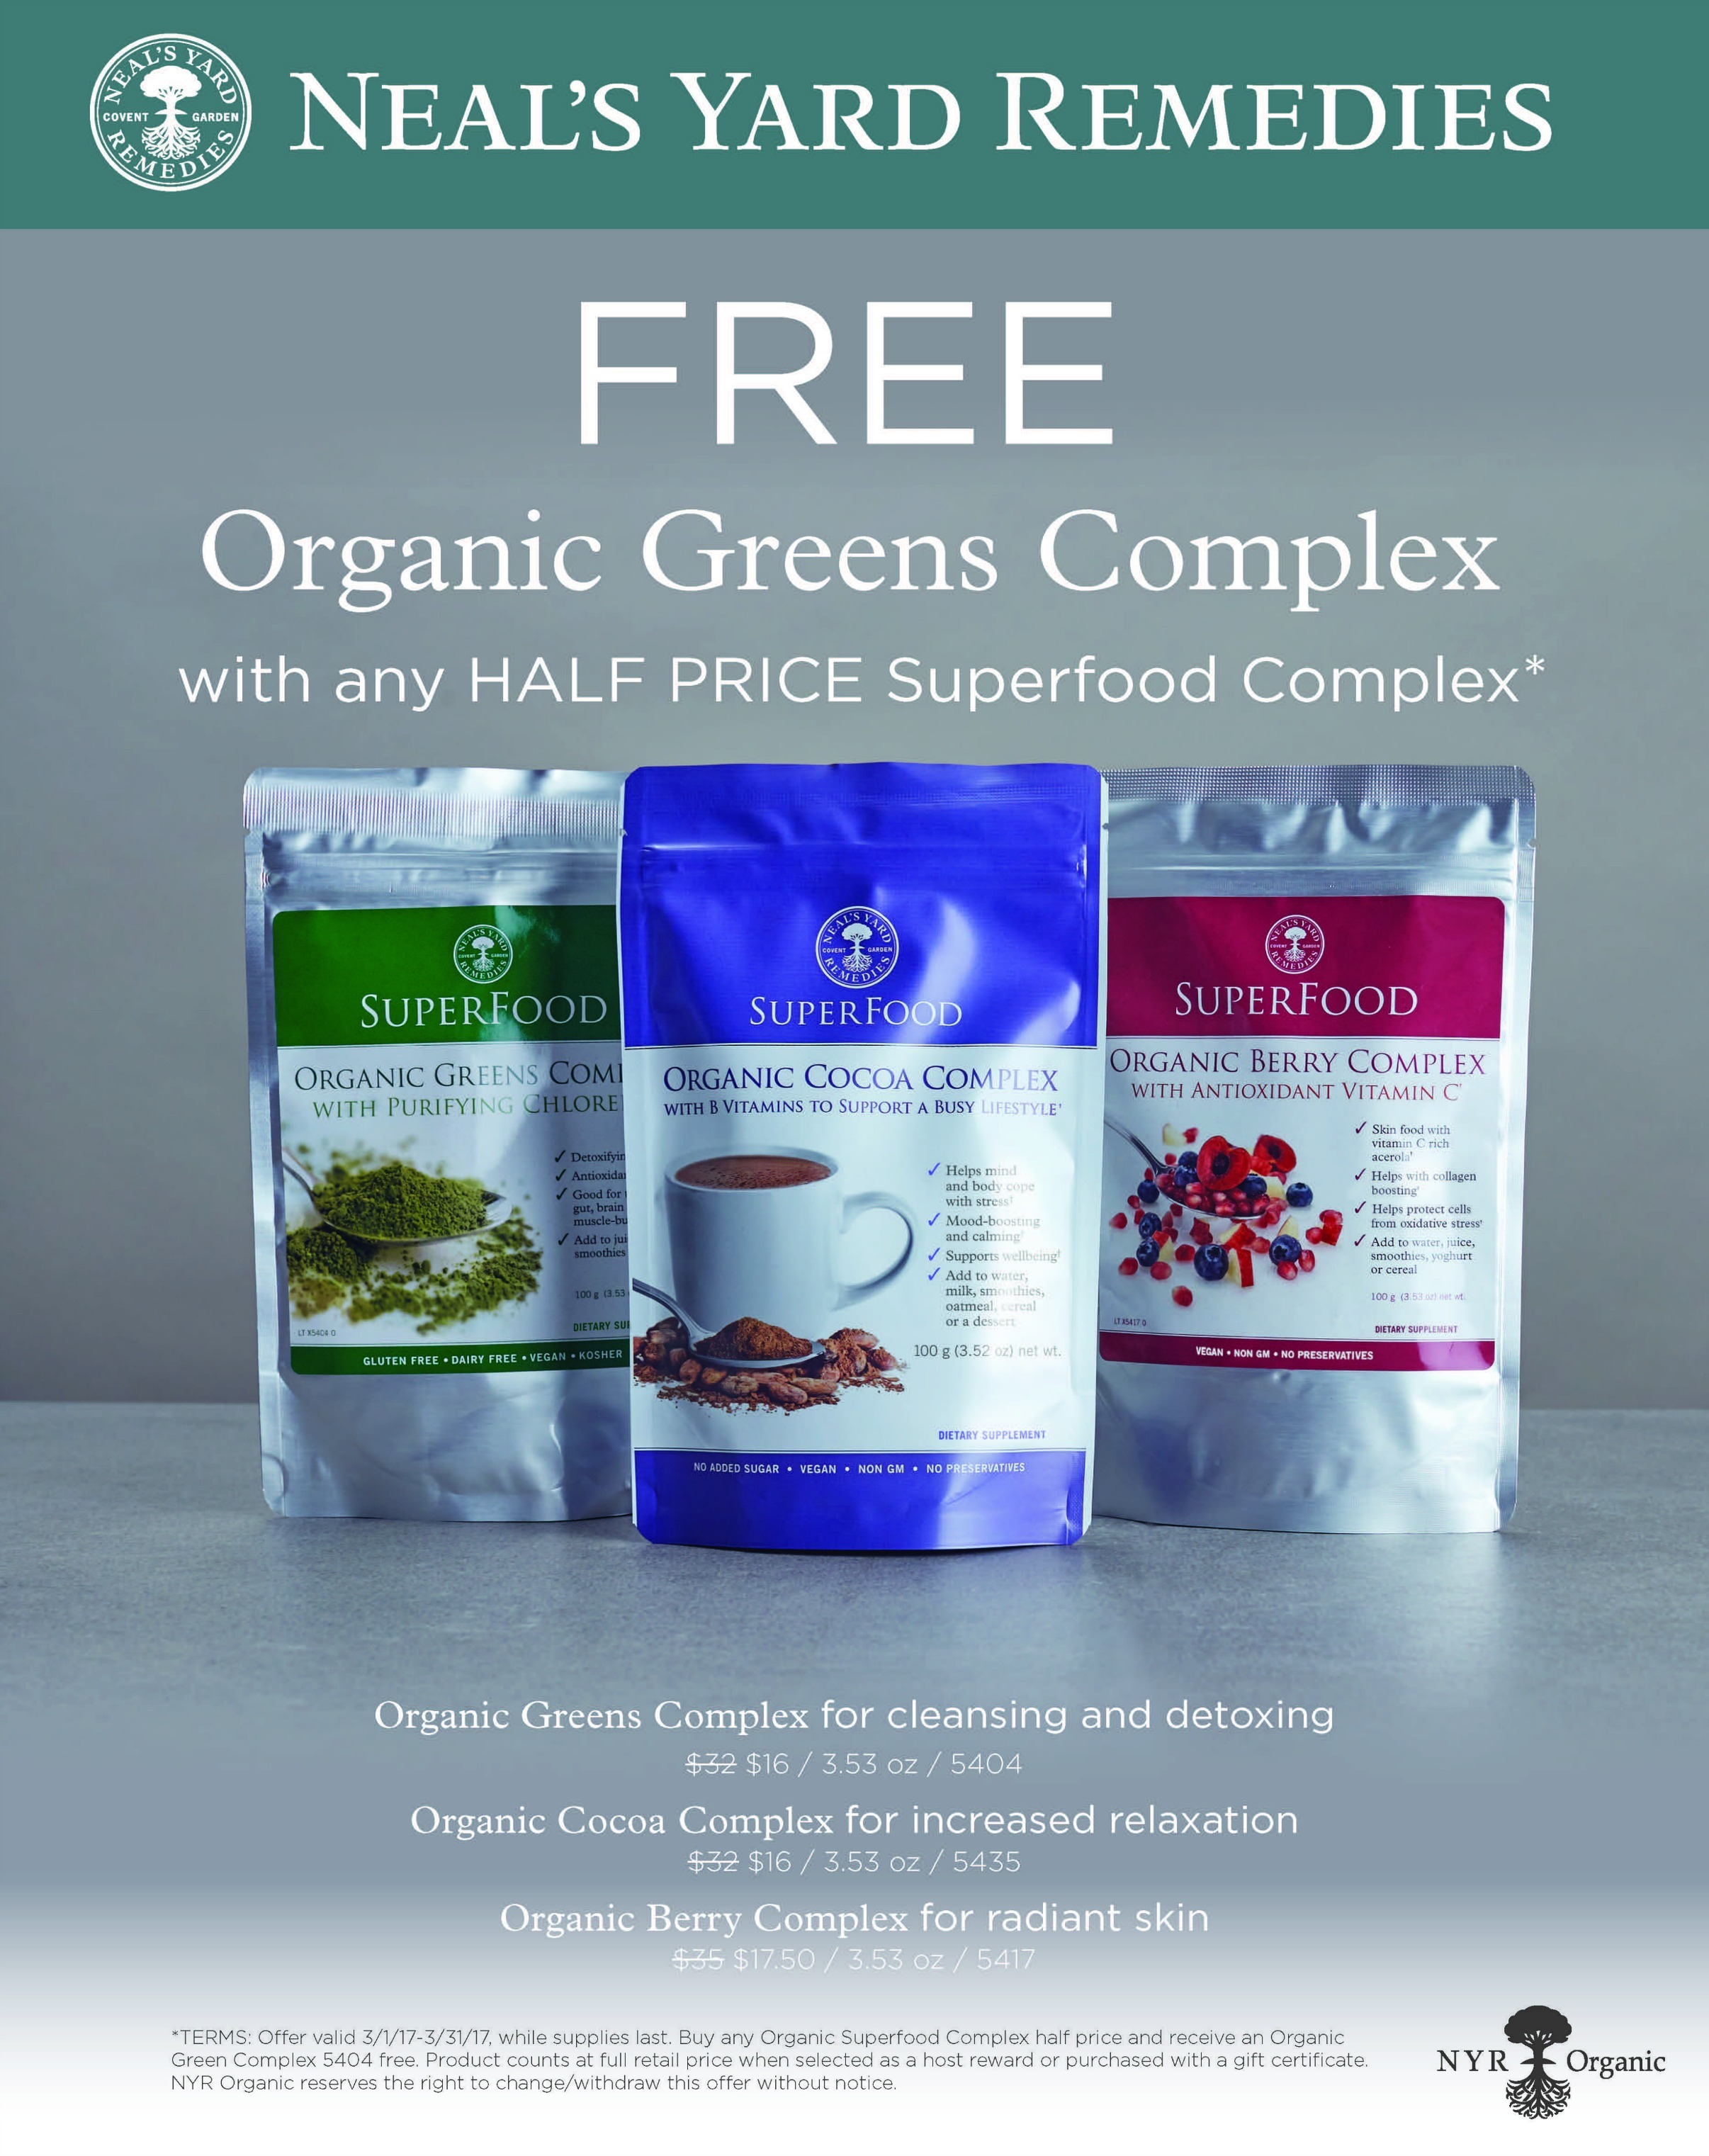 NYR Organic Deals in March - Superfoods